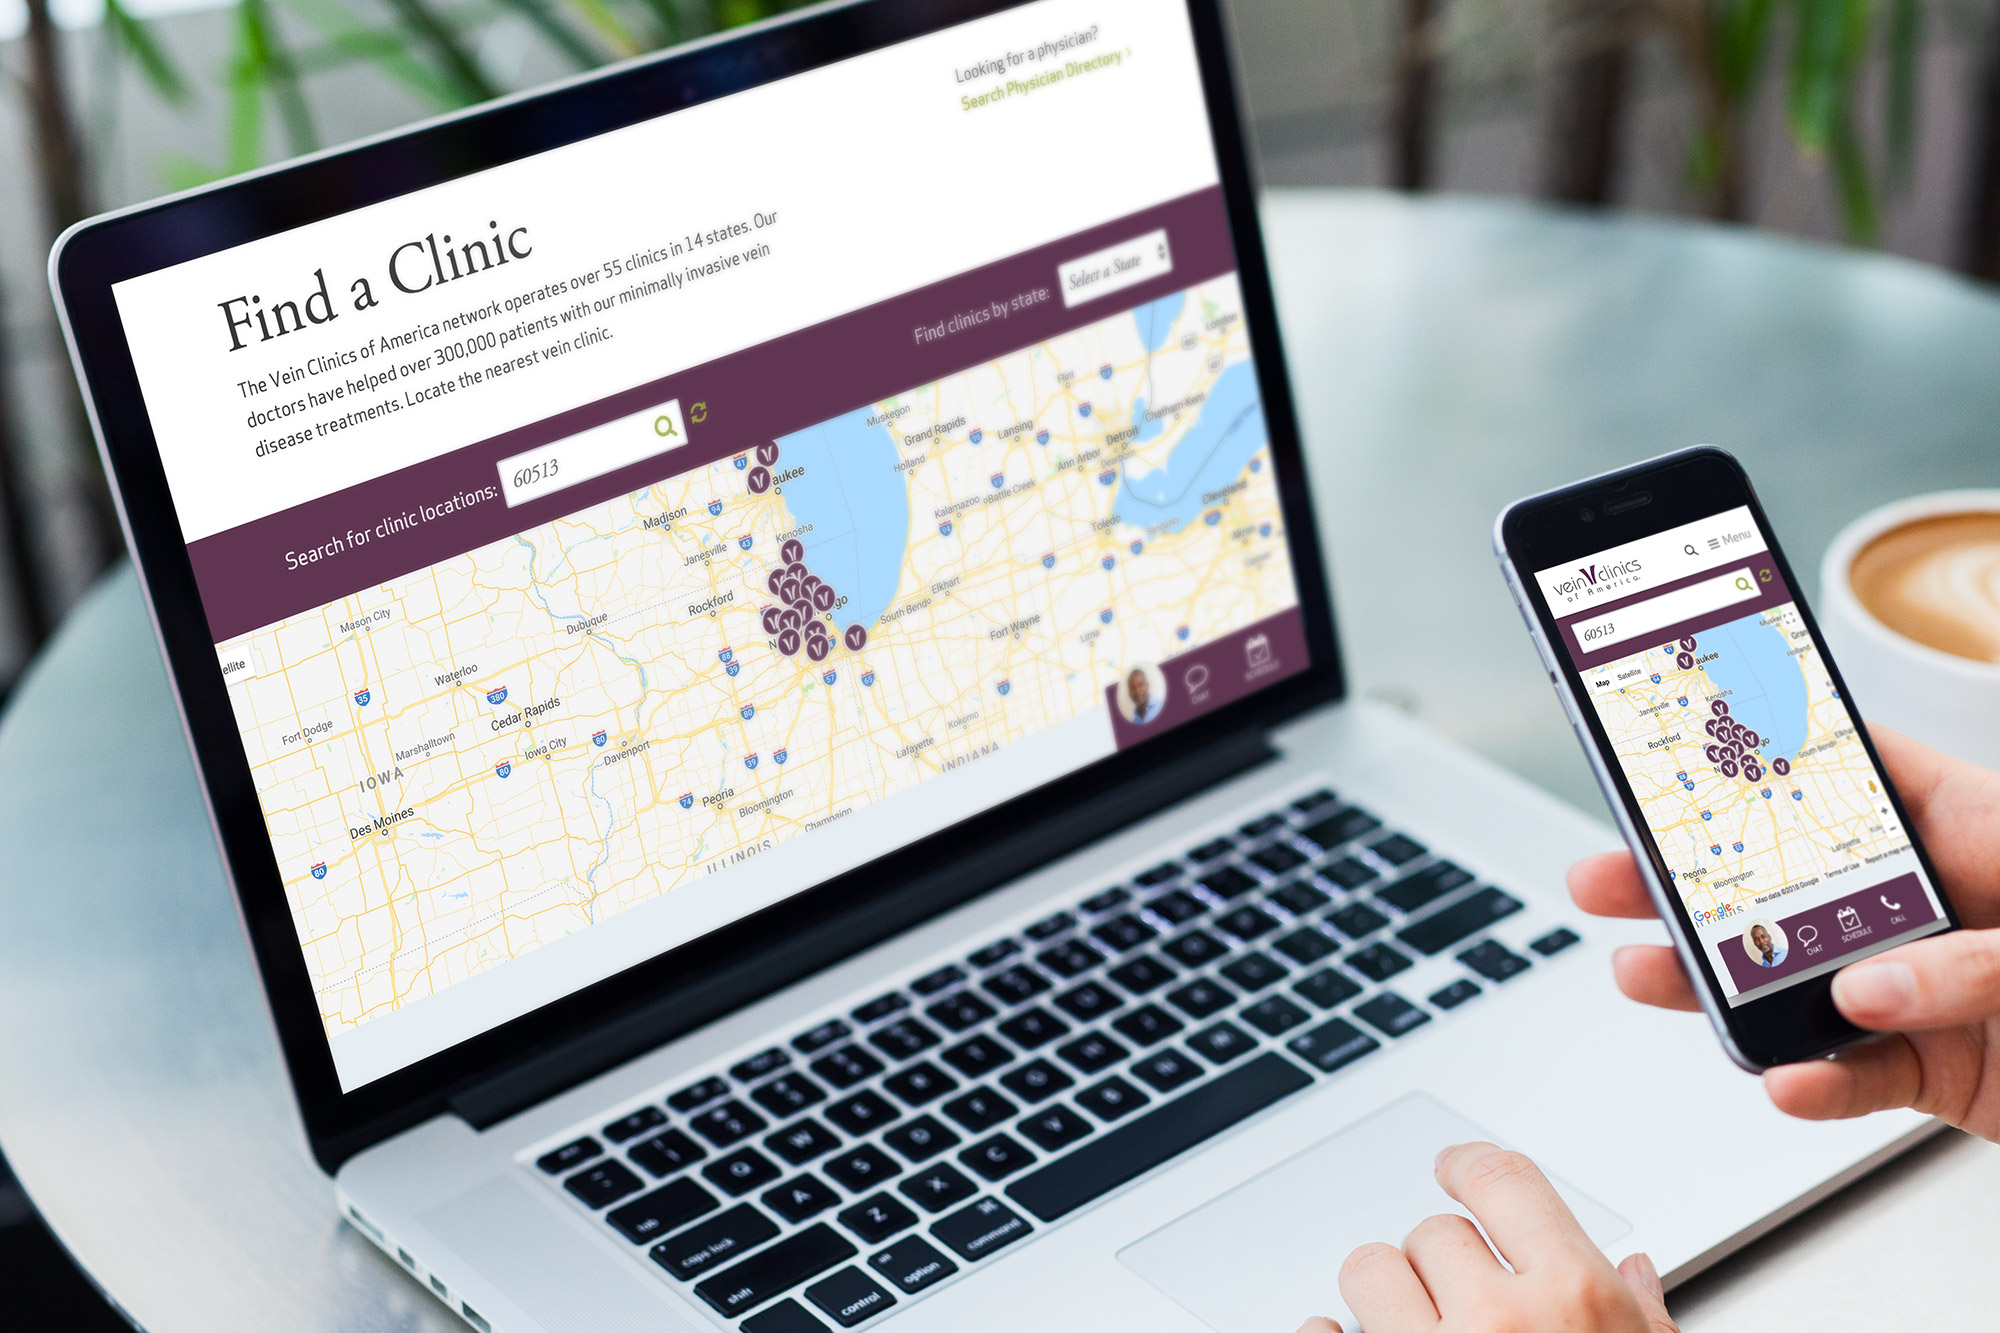 Vein Clinics Find a Clinic Location